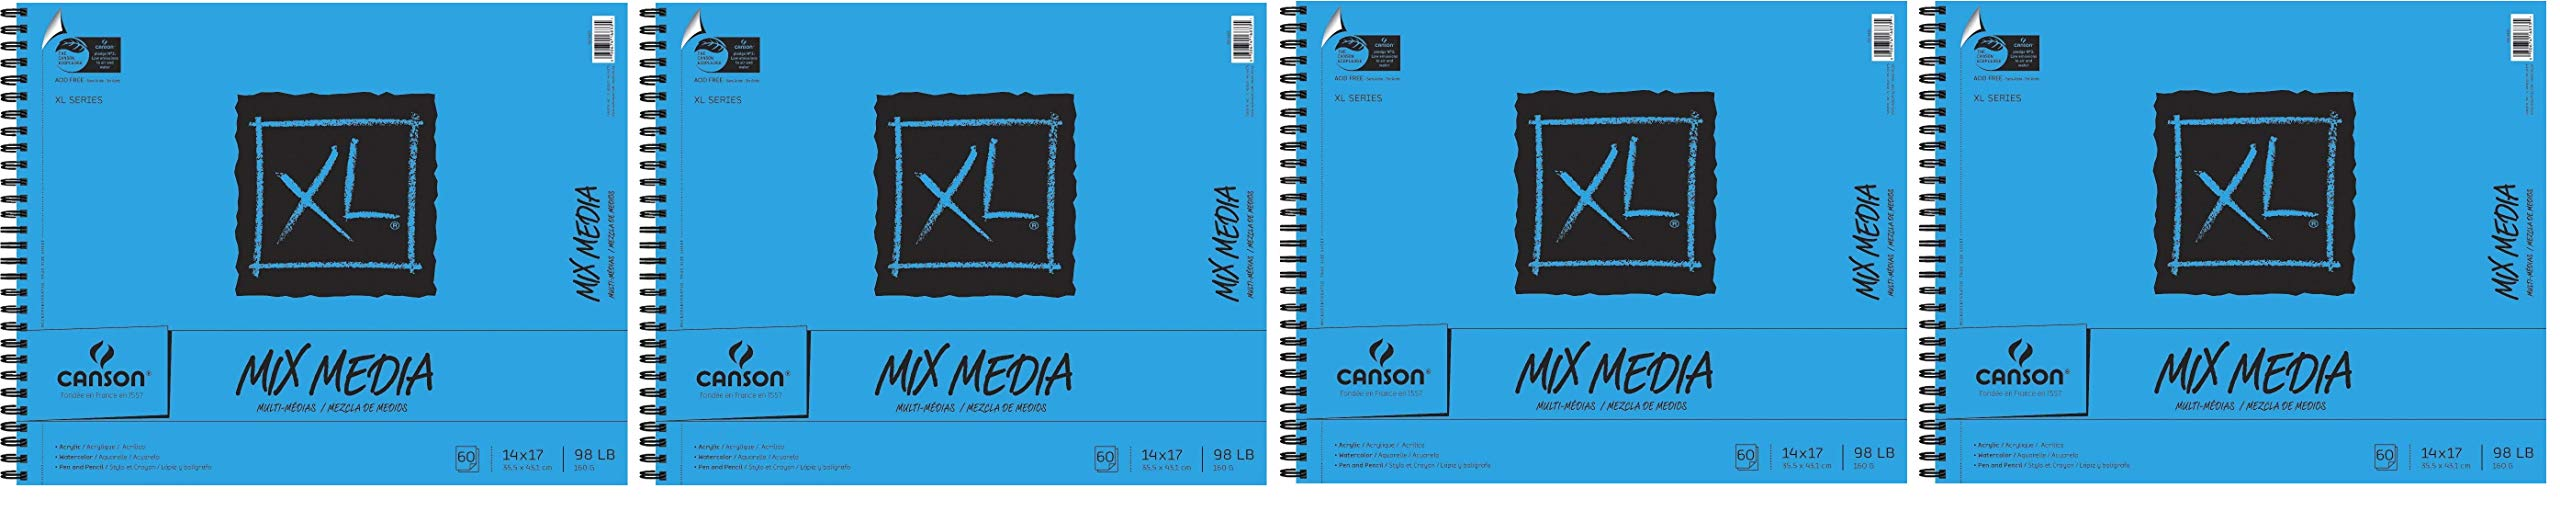 Canson XL Mix-Media Paper, 98 lb, 14 x 17 Inches, 60 Sheets - 100510930 (Fоur Paсk, White) by Canson